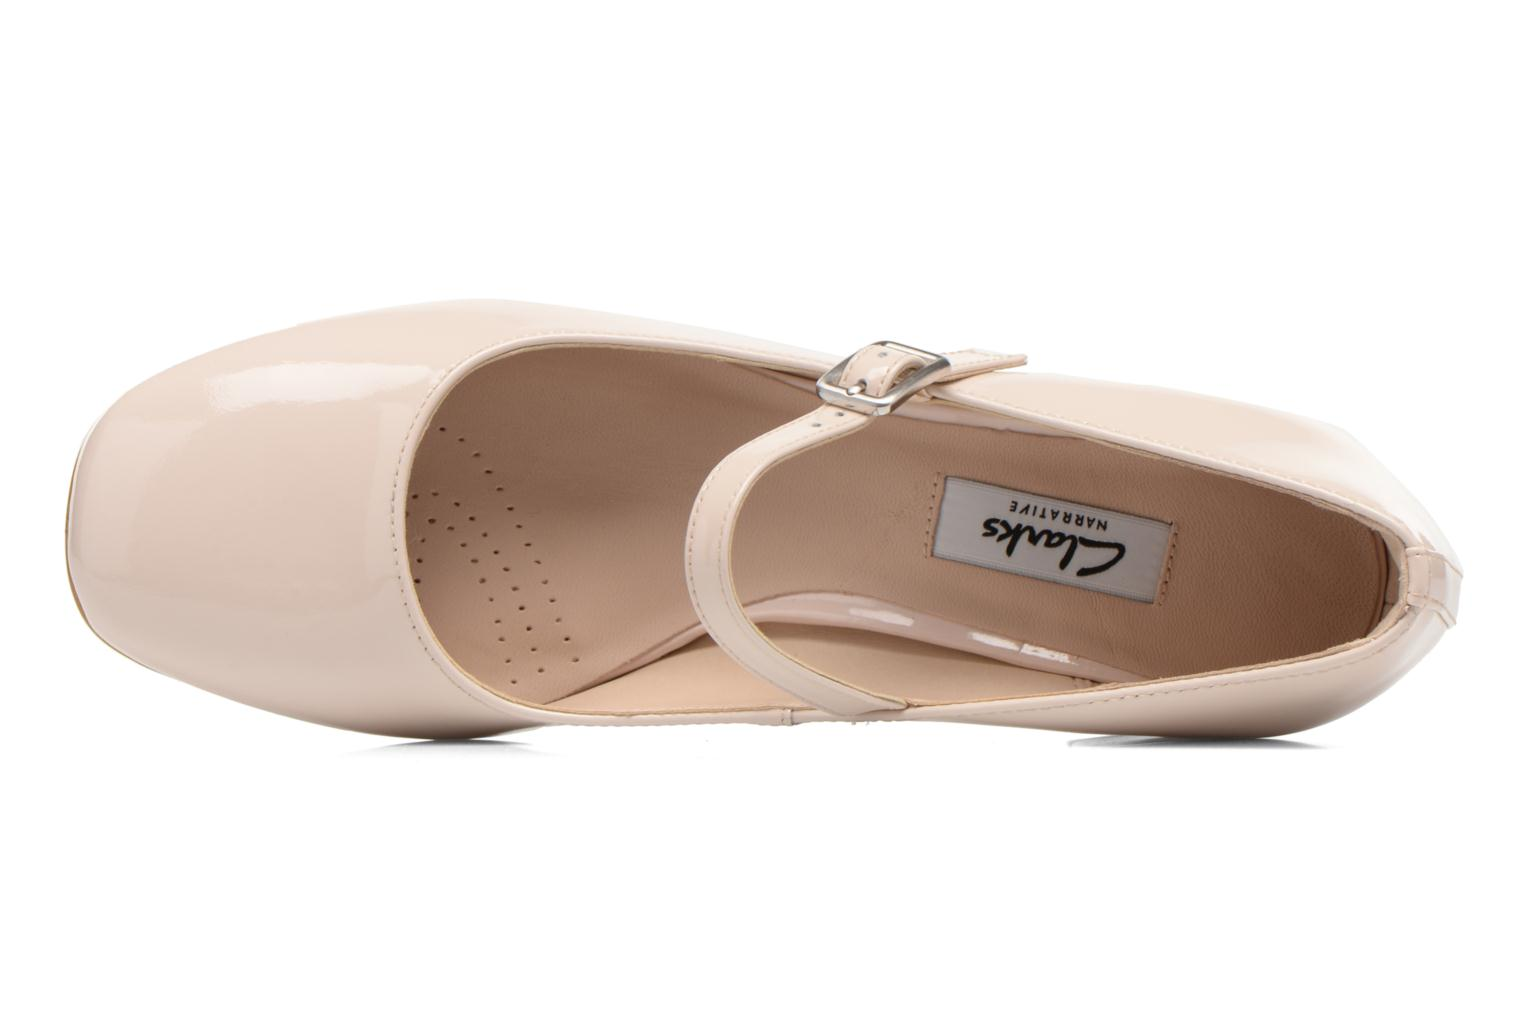 Chinaberry Pop Nude pink patent